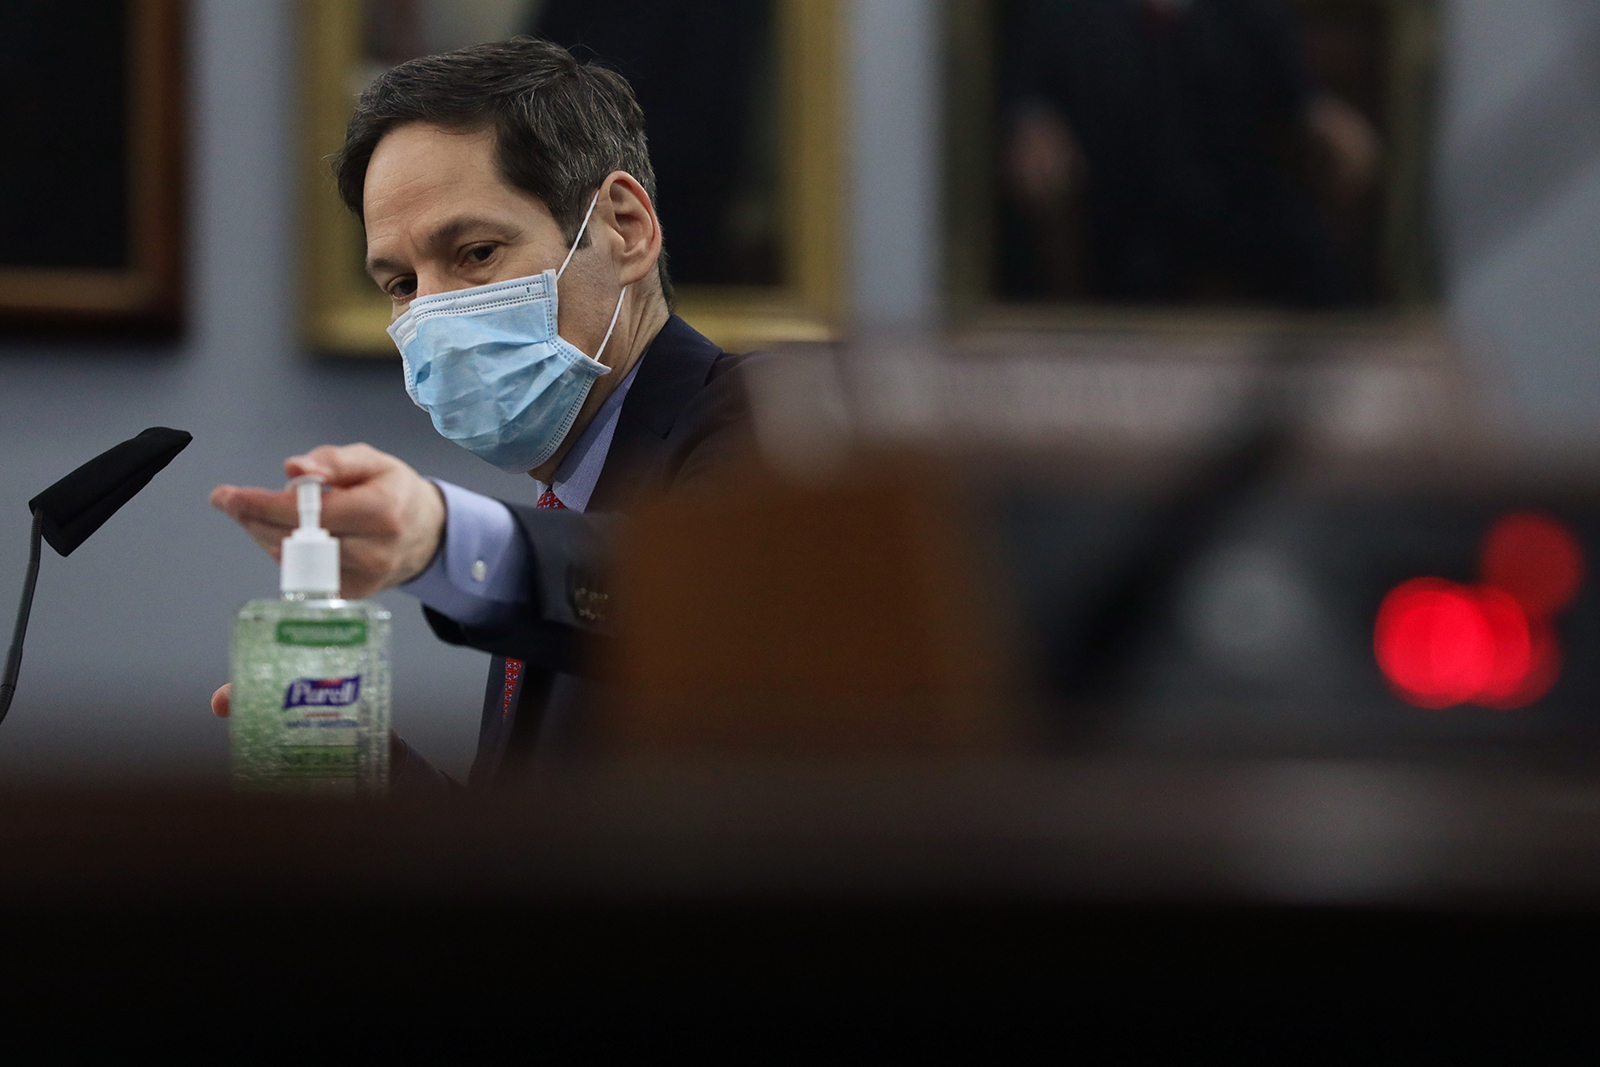 Former Director of the Centers for Disease Control and Prevention Dr. Tom Frieden uses hand sanitizer during a hearing on May 6 in Washington.